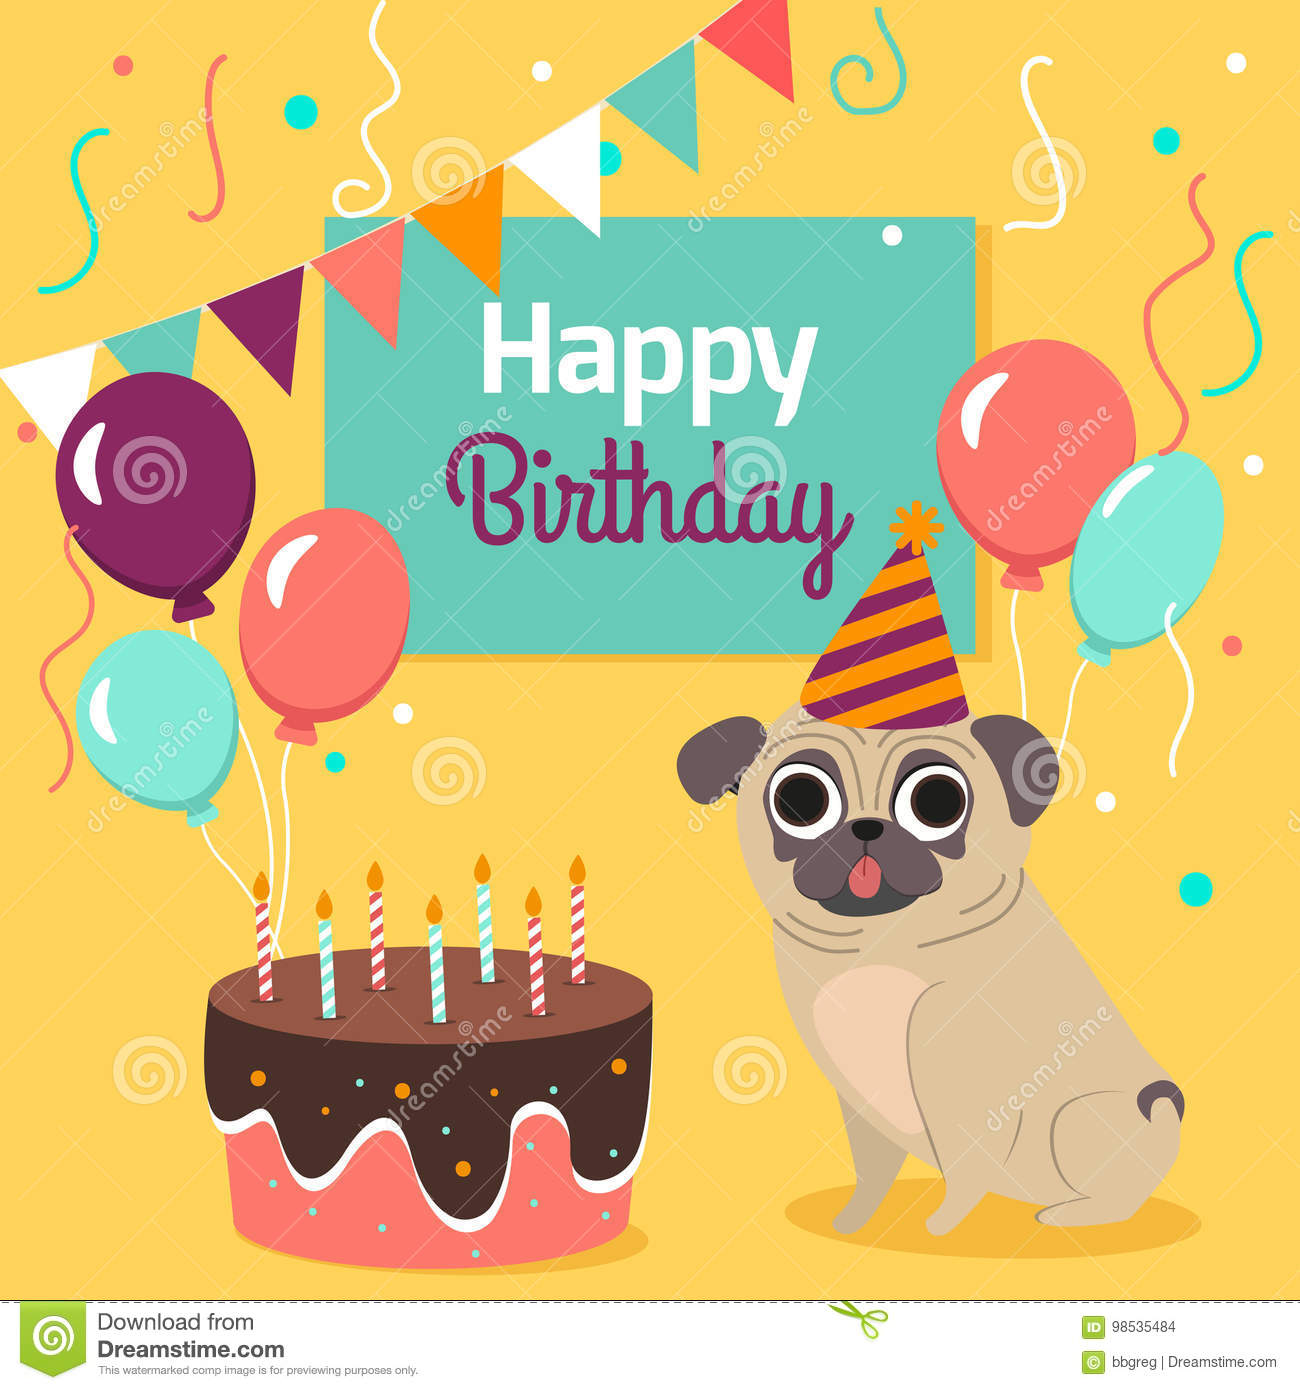 Happy Birthday Card With Funny Pug Dog Cake Colorful Balloons On Bright Yellow Background Vector Illustration